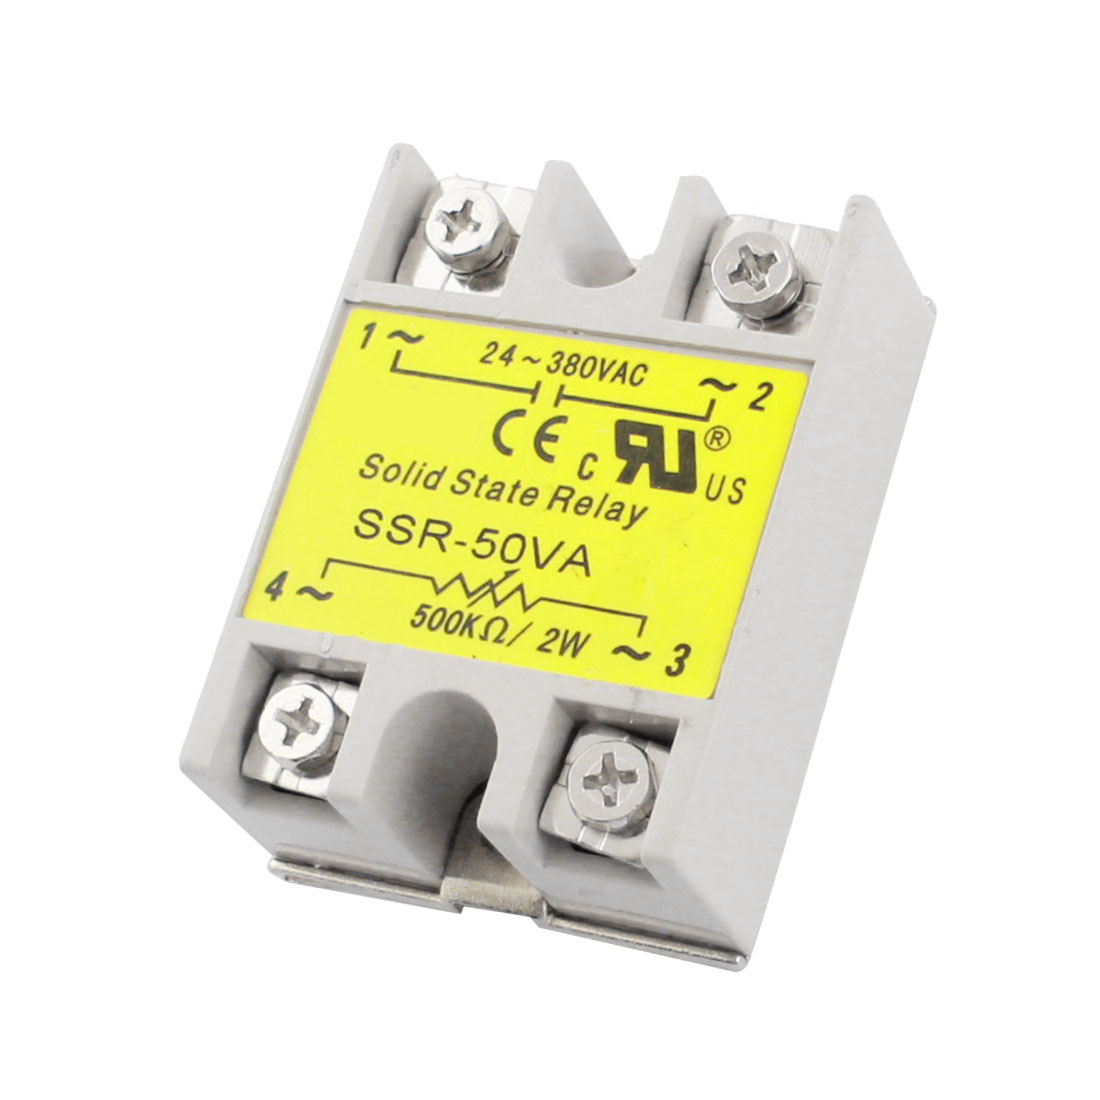 SSR-50VA 500K Ohm/2W Input AC24-380V Output 50VA Metal Base Single Phase Resistance Type Adjustable Solid State Relay